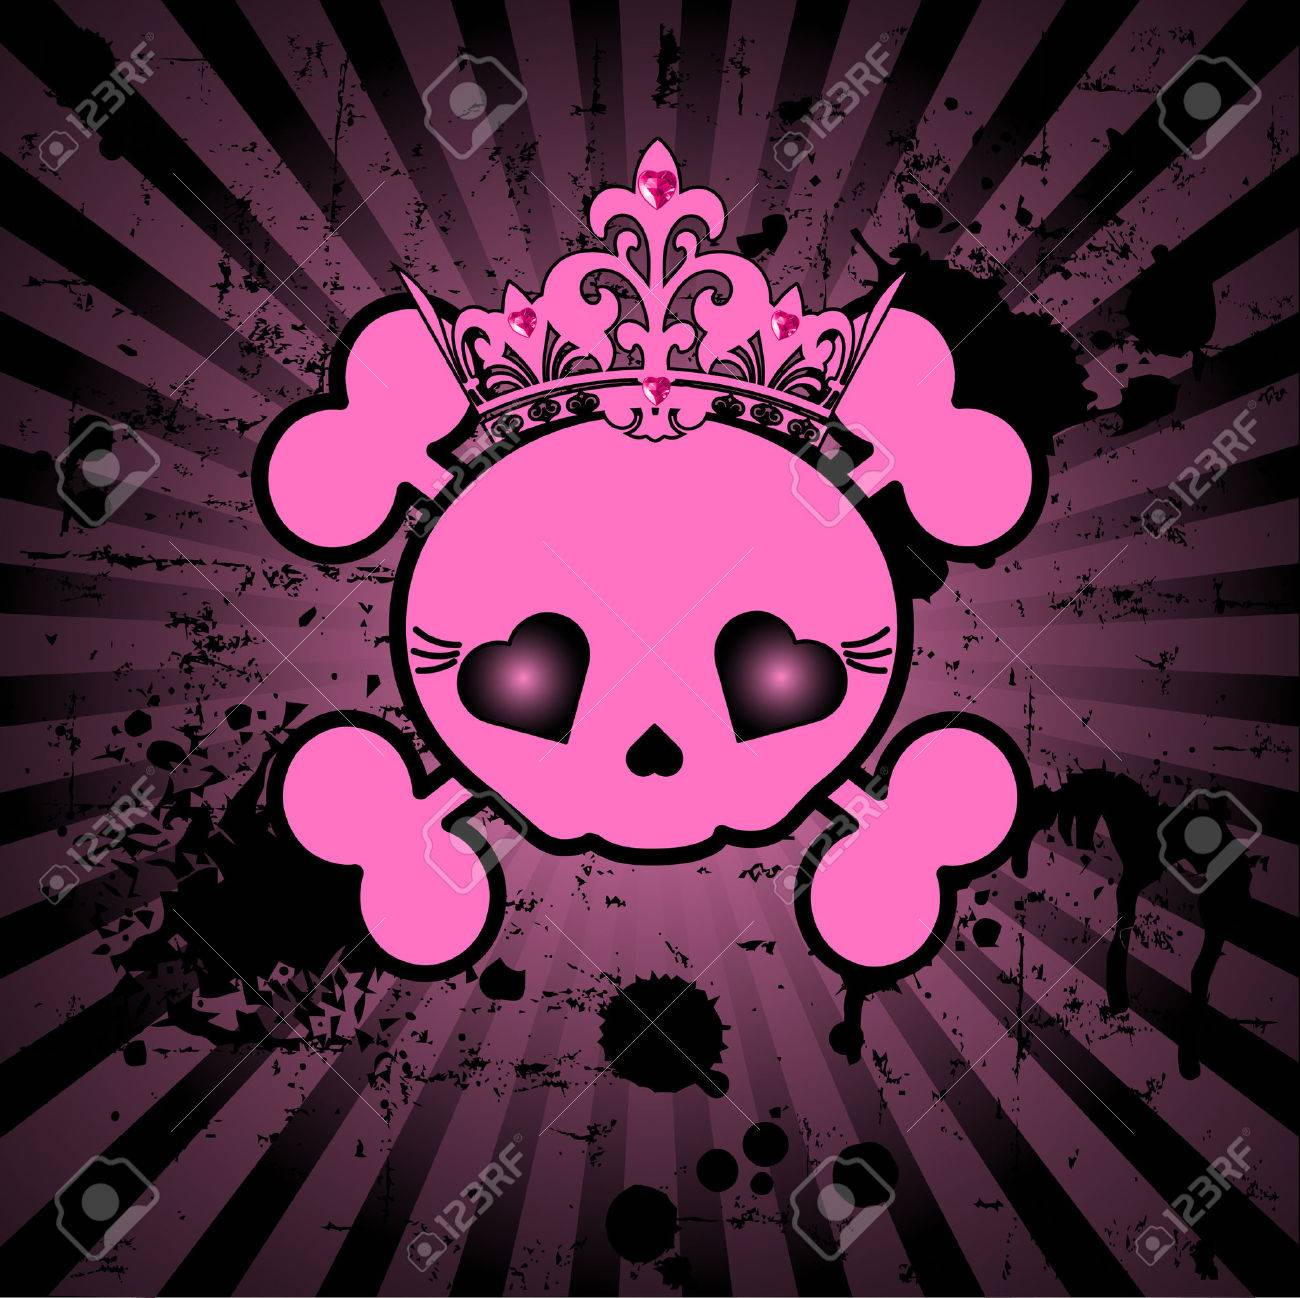 Very cute Skull with crown on grange radial background with place for copy/text Stock Vector - 7407582